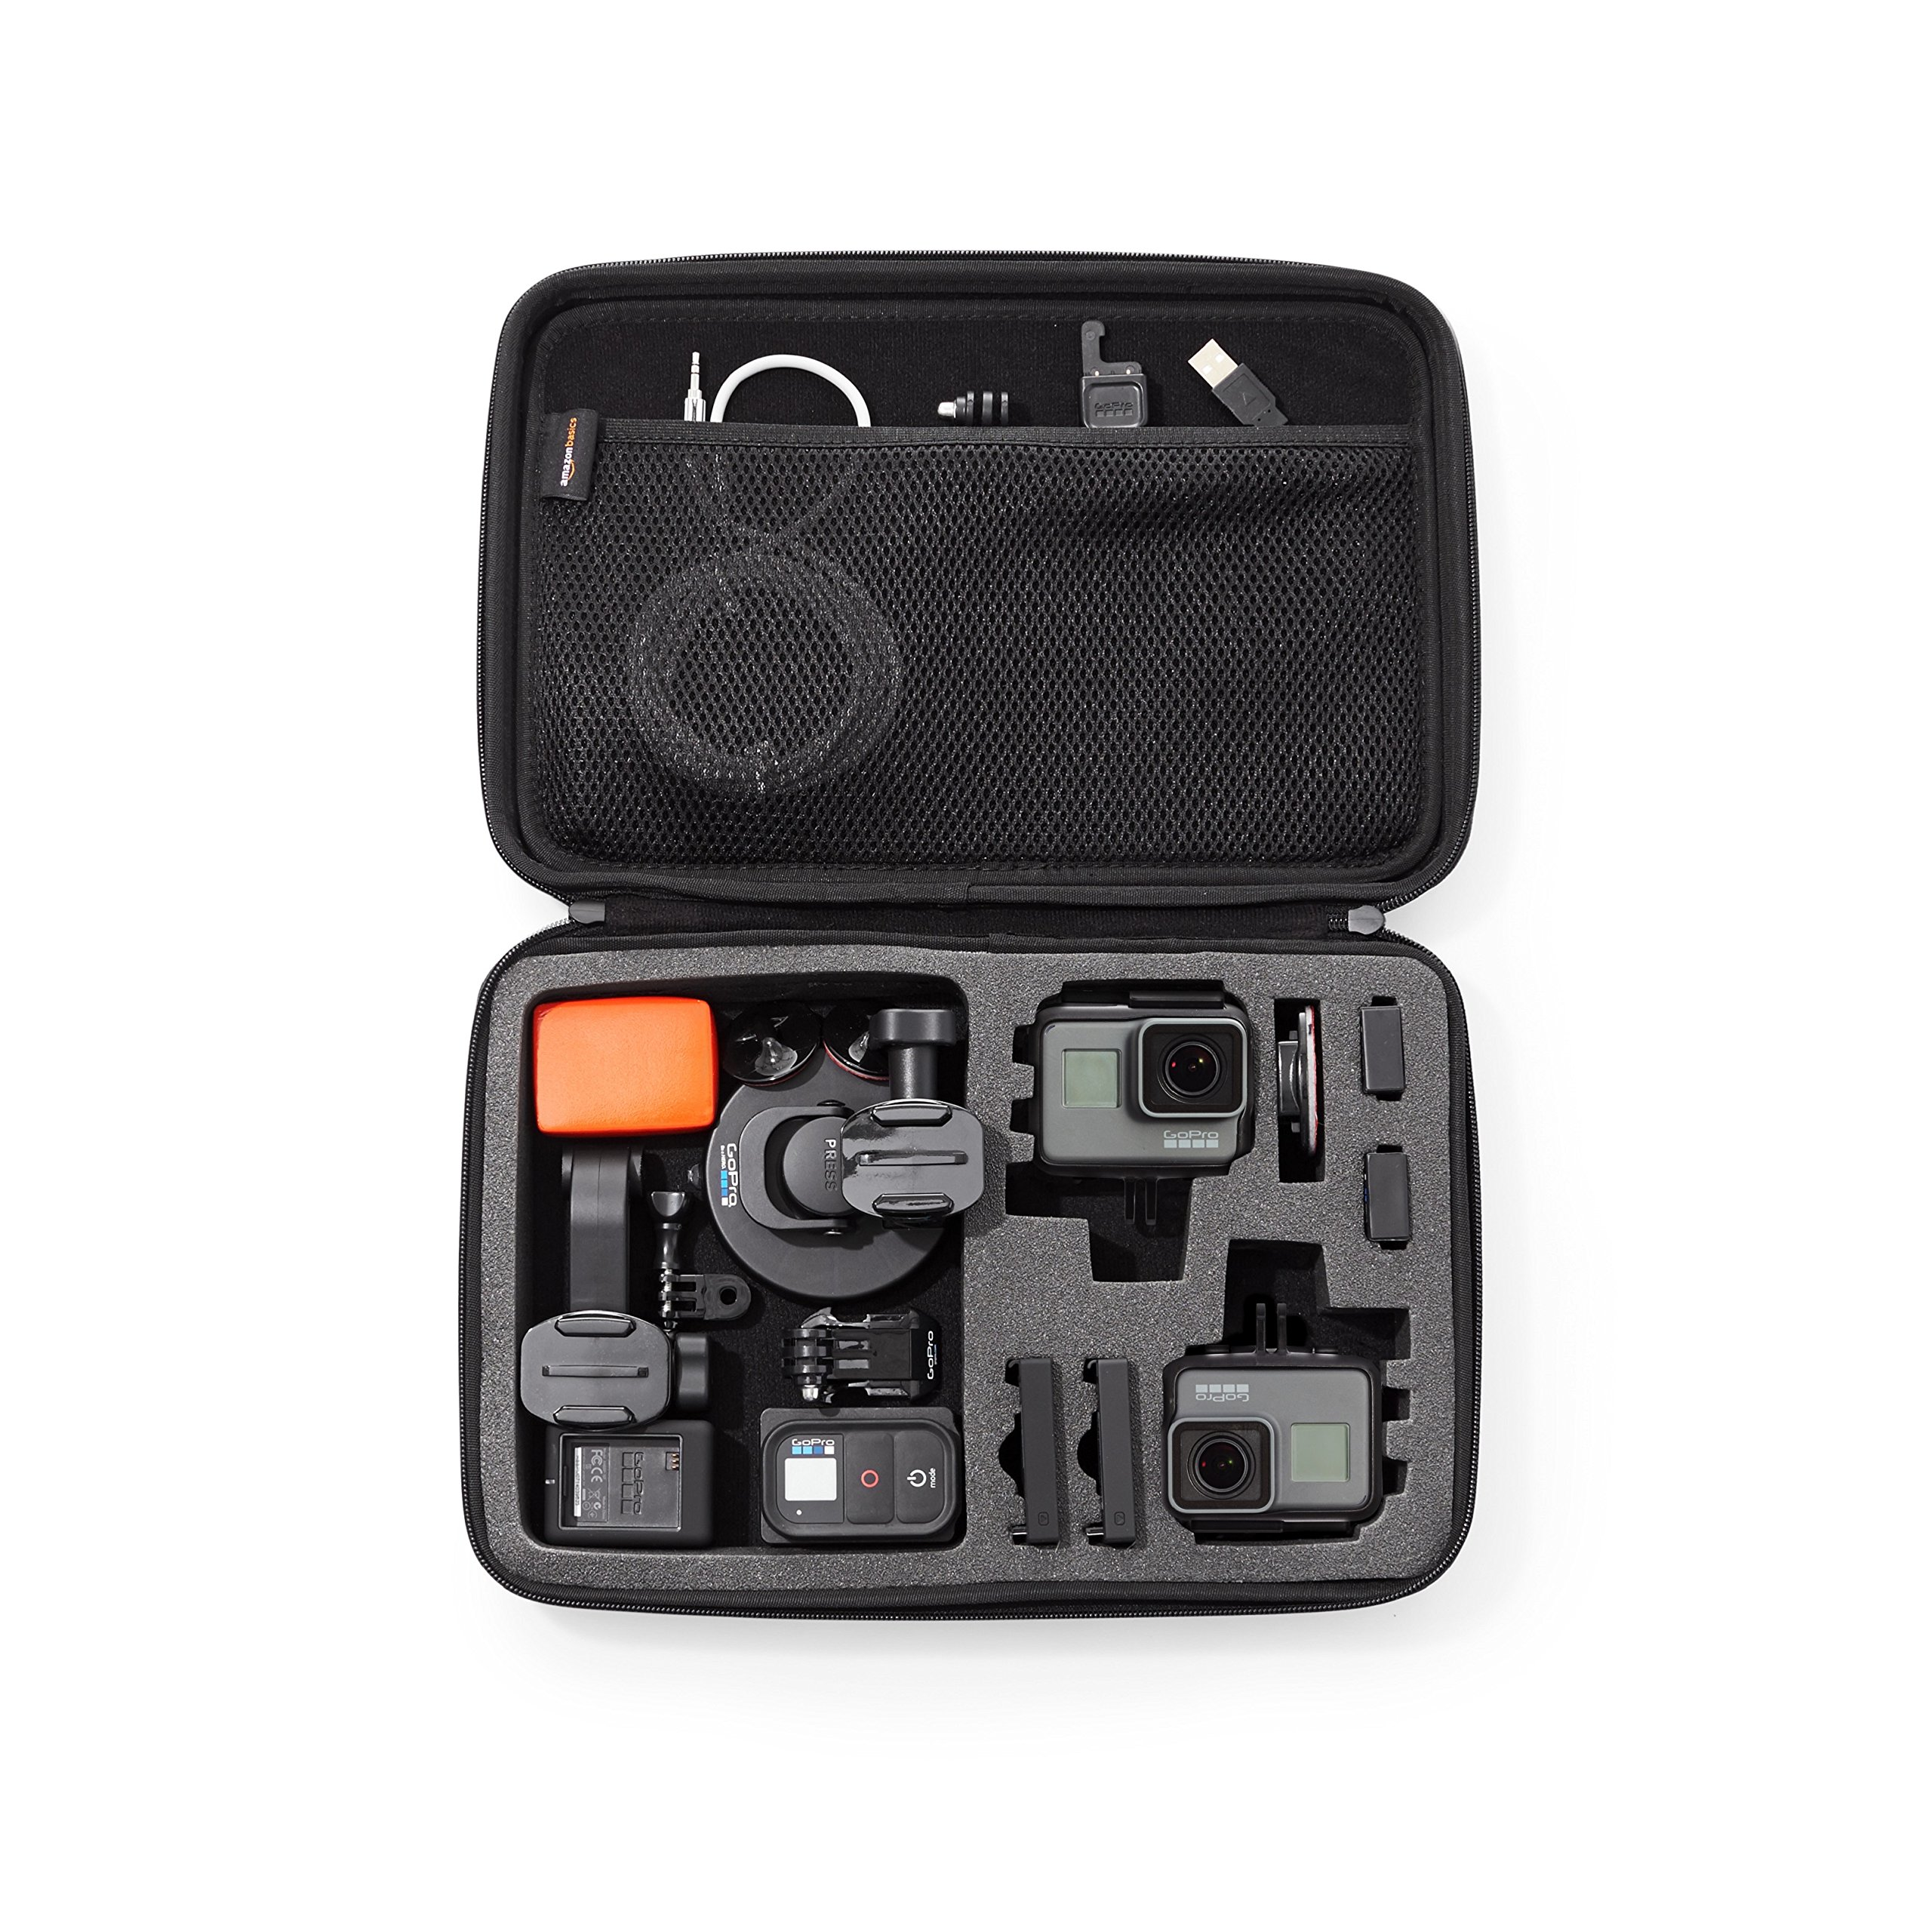 AmazonBasics Large Carrying Case for GoPro And Accessories - 13 x 9 x 2.5 Inches, Black by AmazonBasics